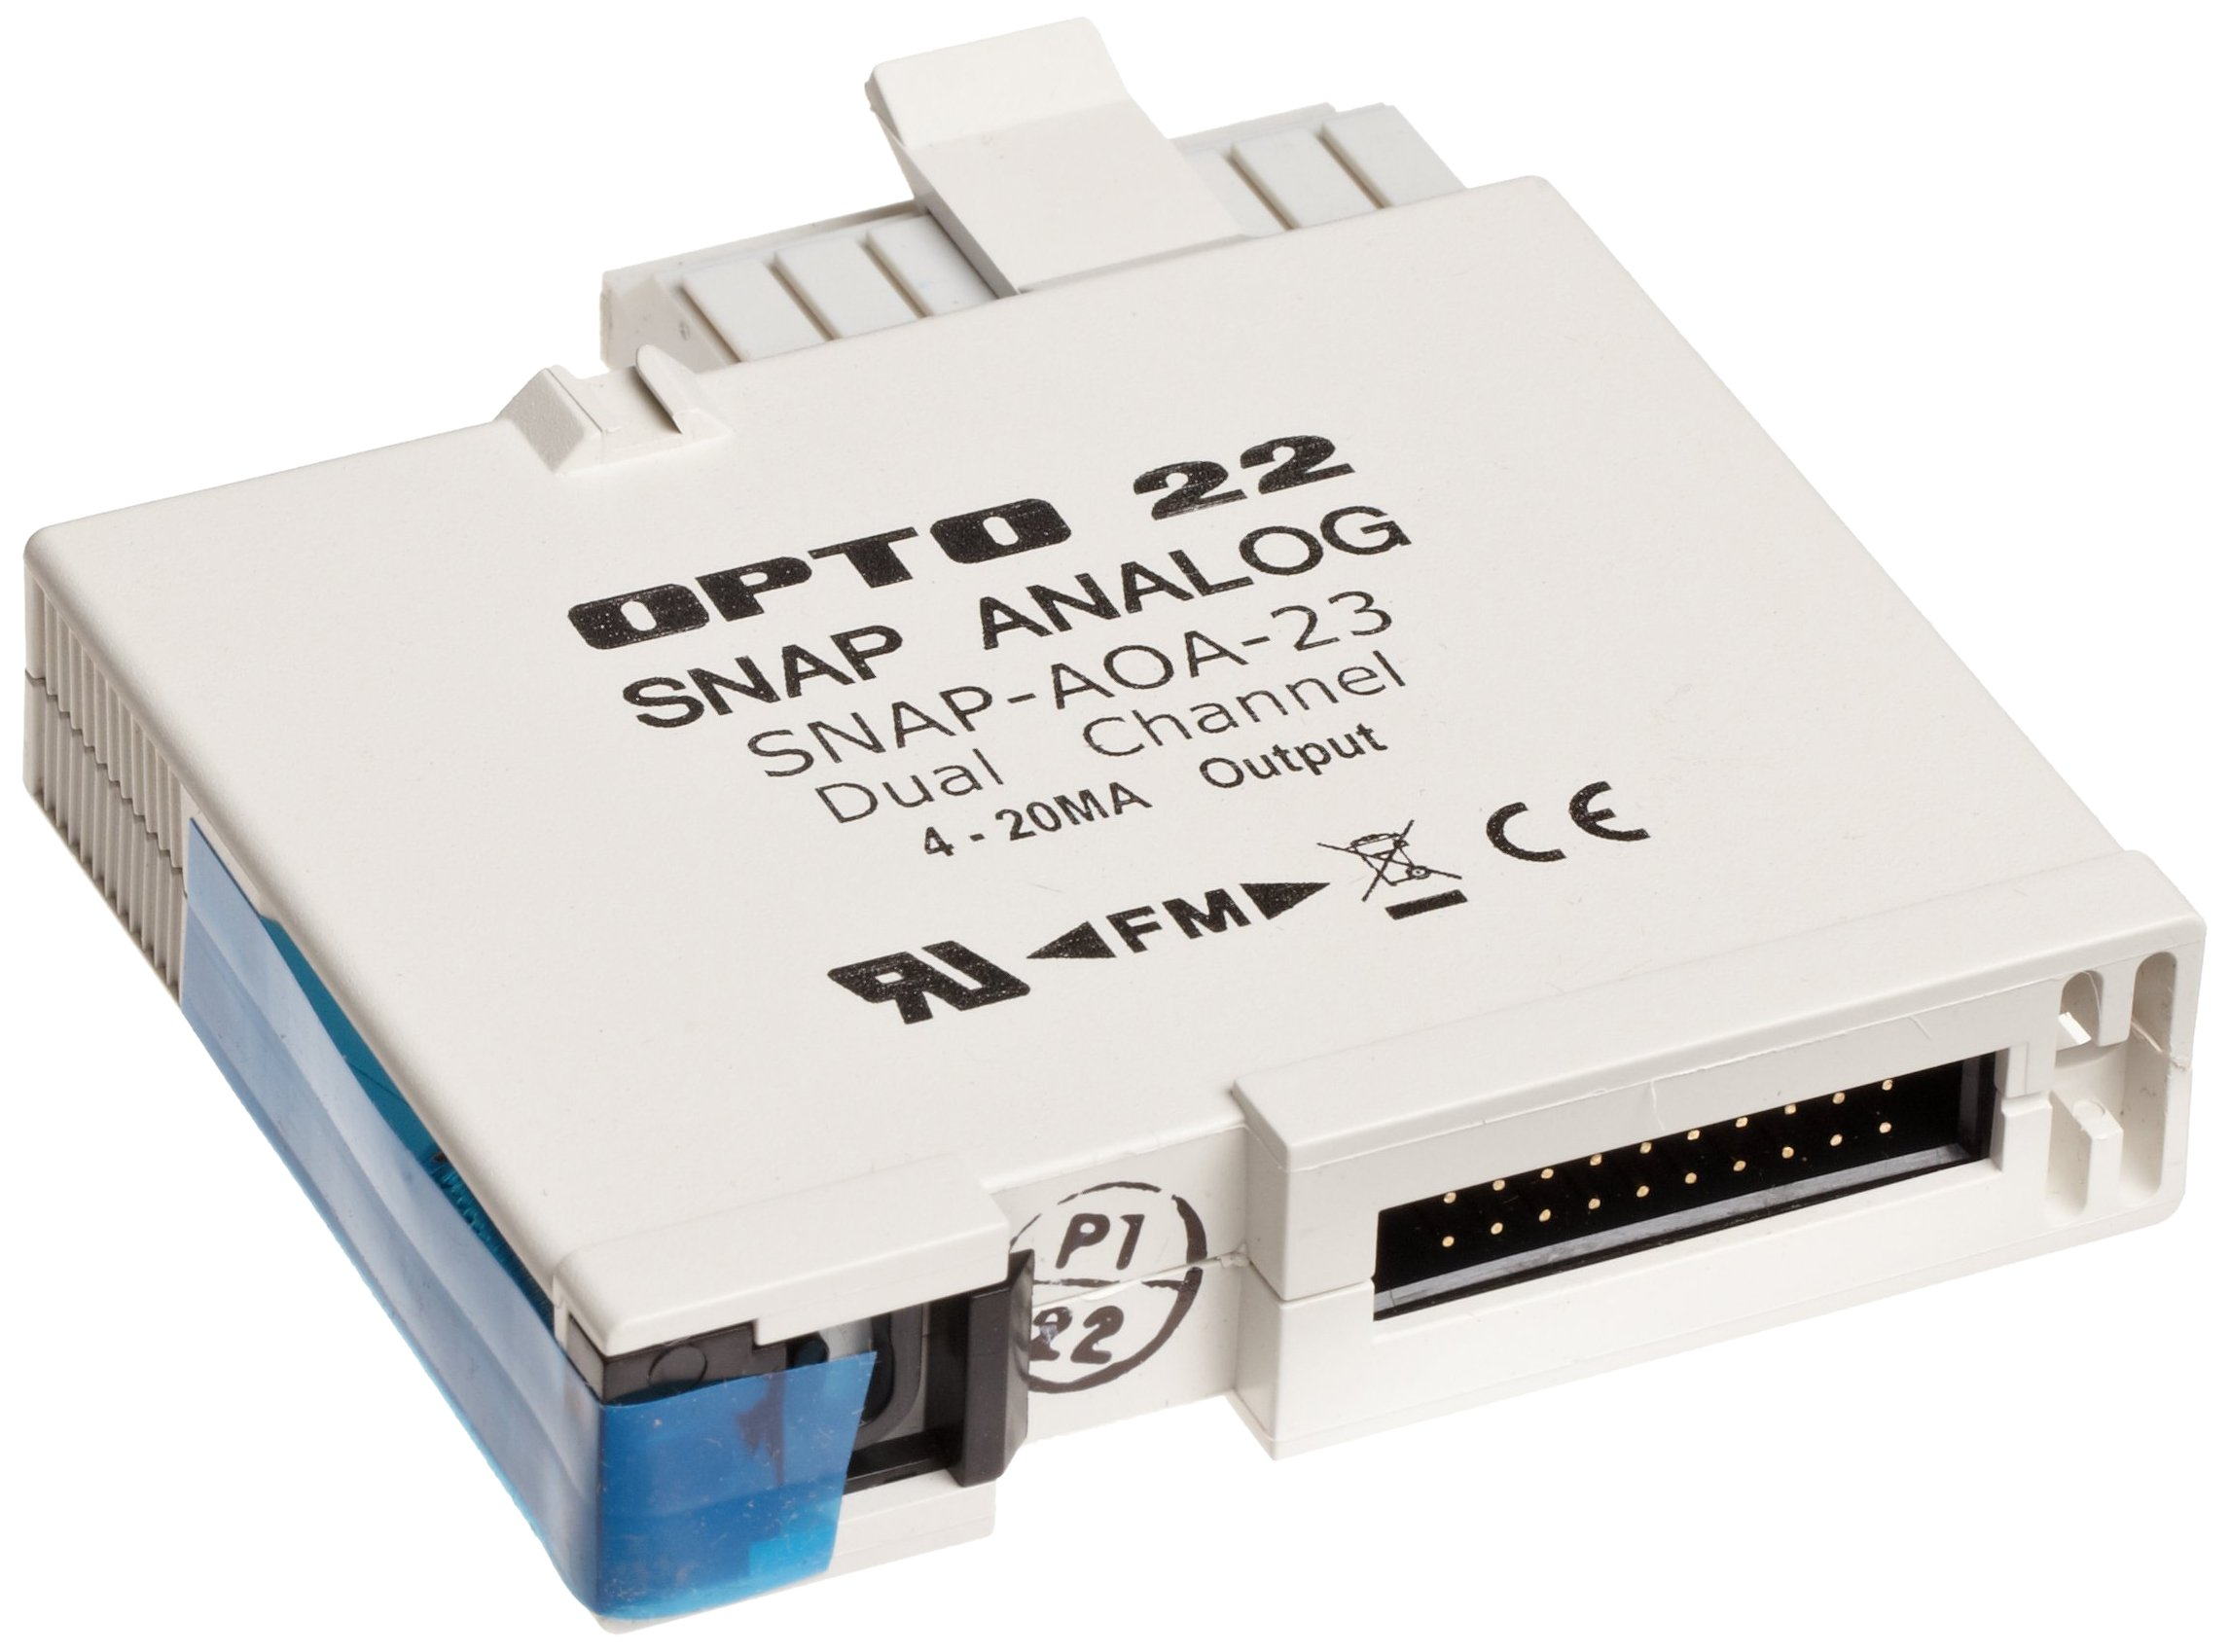 Opto 22 SNAP-AOA-23 - SNAP Current Loop Analog Output Module, 2-Channel, 4-20 mA Input 5 Volts DC (+/-0.15) at 150 mA, Output Range , 16 mA Span